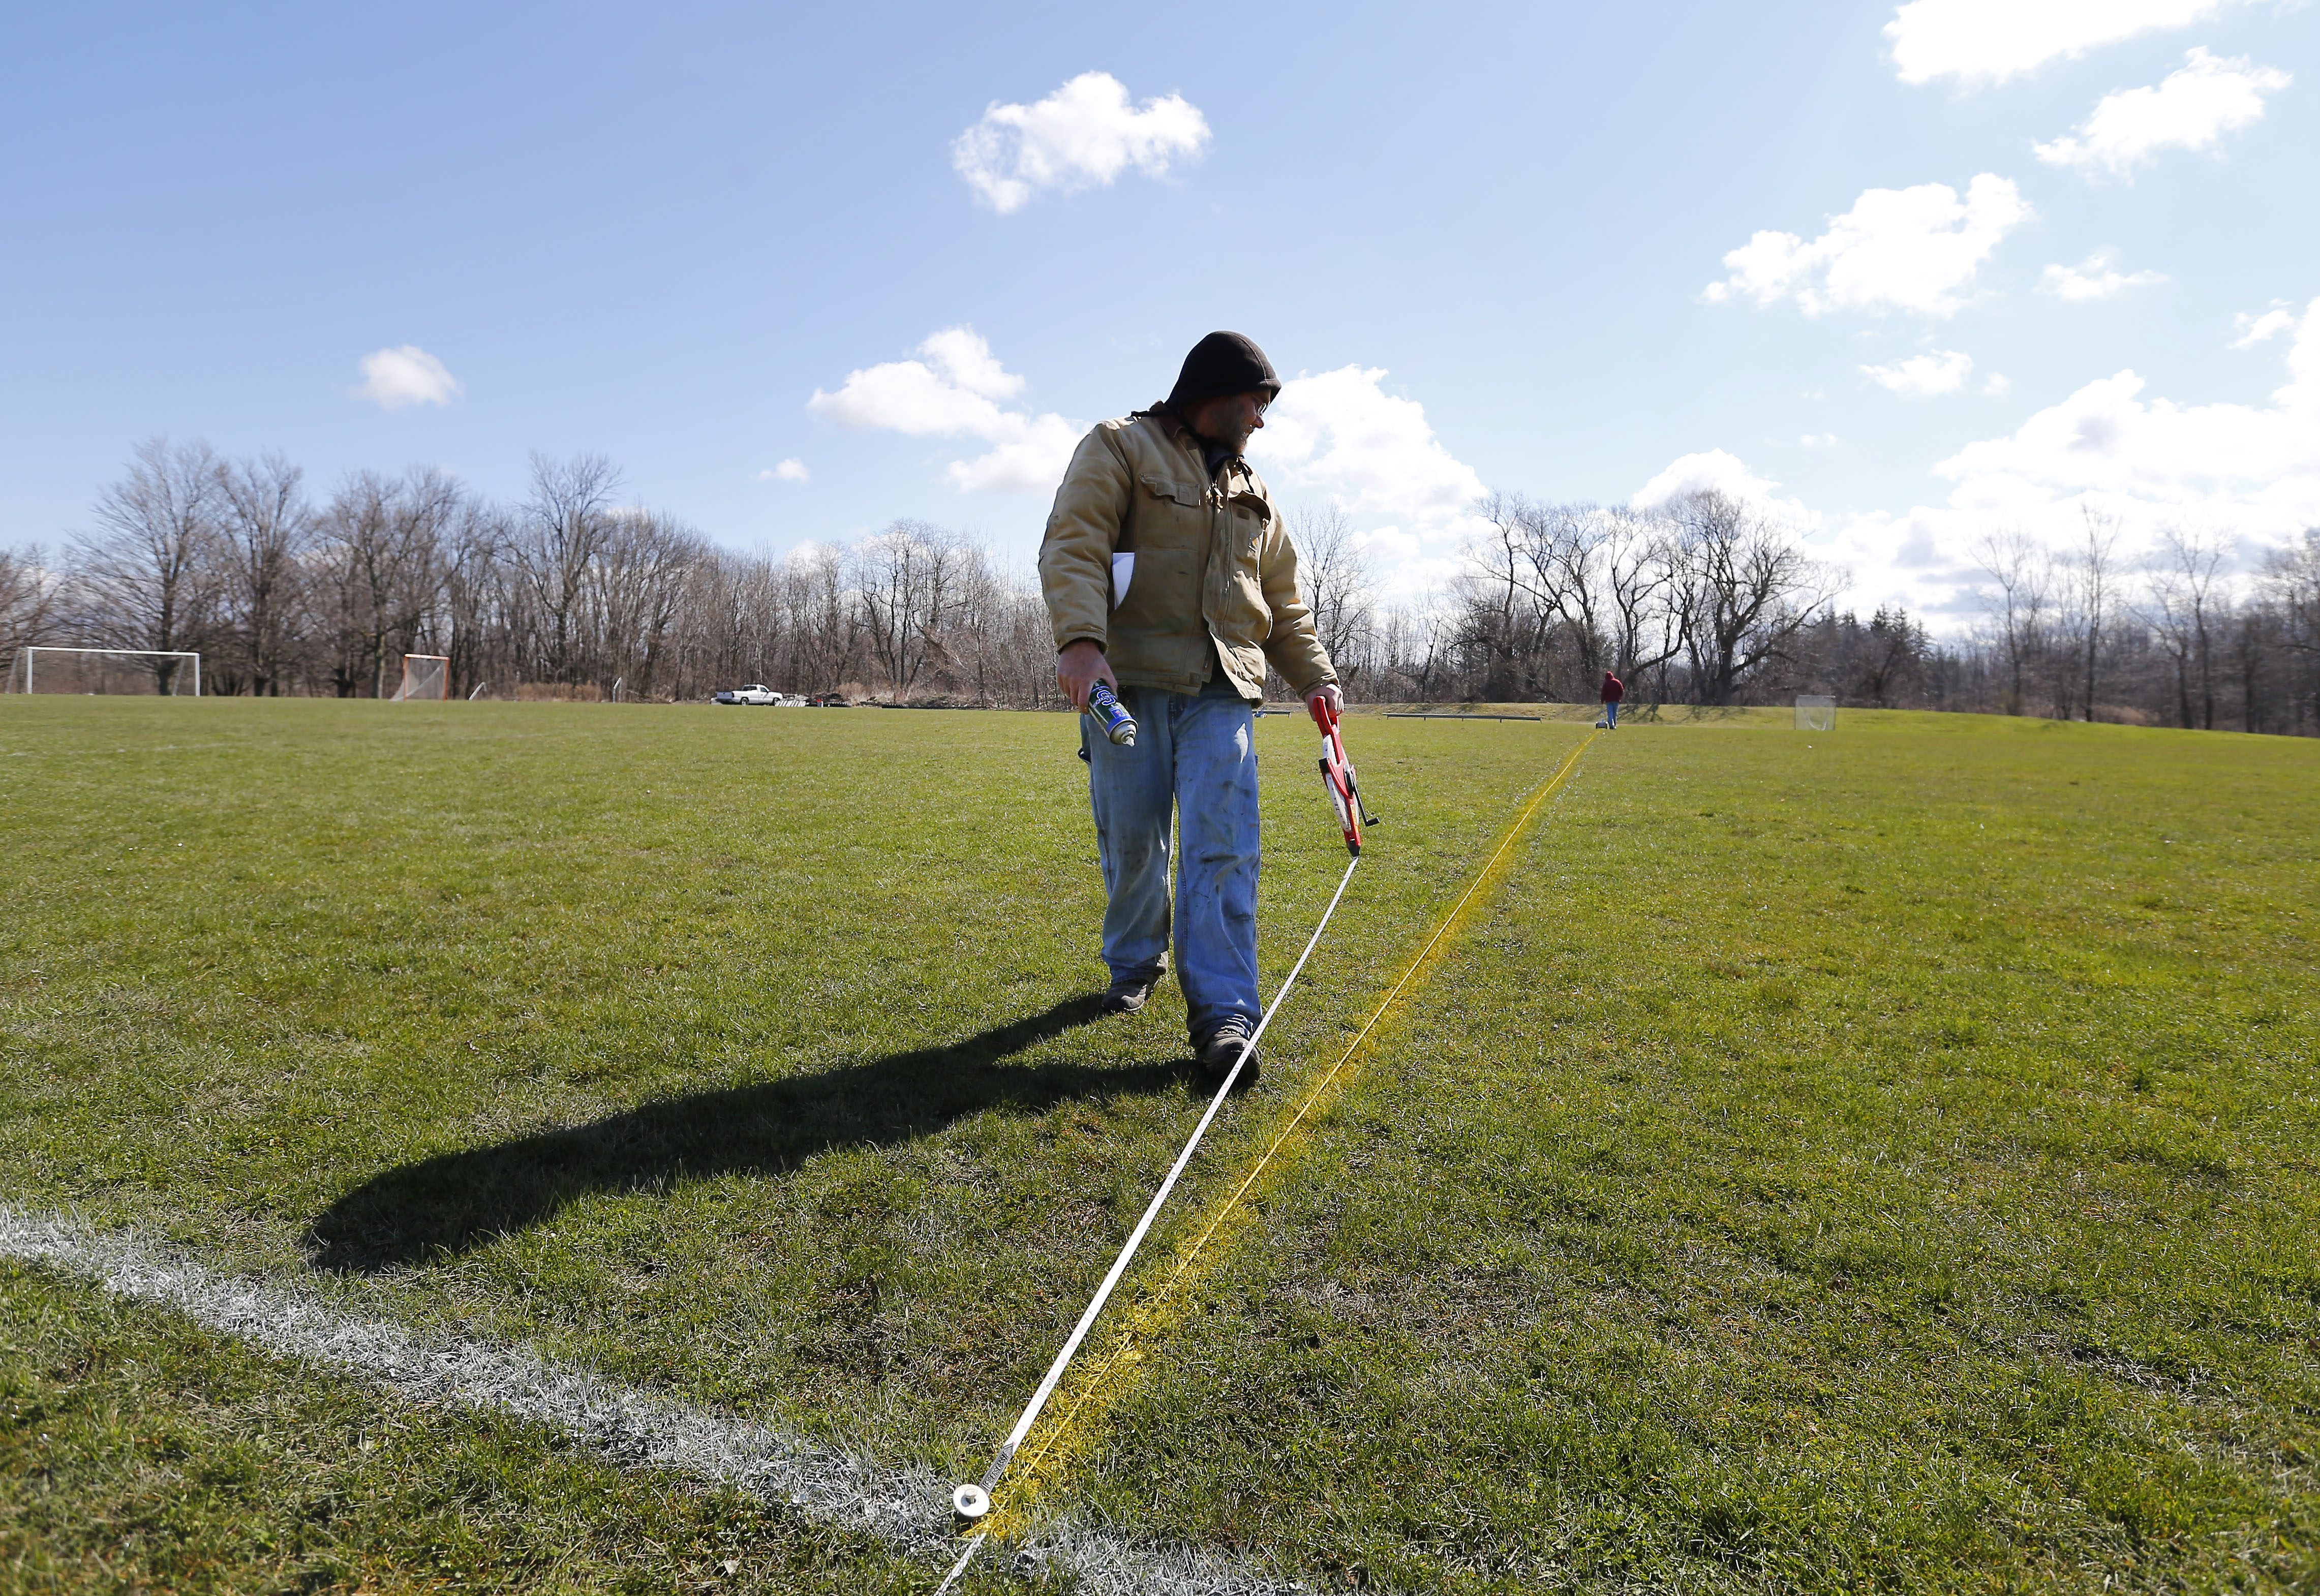 Tom Bapst measures the field as he paints the lines on the lacrosse field at Hilbert College in Hamburg Tuesday, April 12, 2016. (Mark Mulville/Buffalo News)